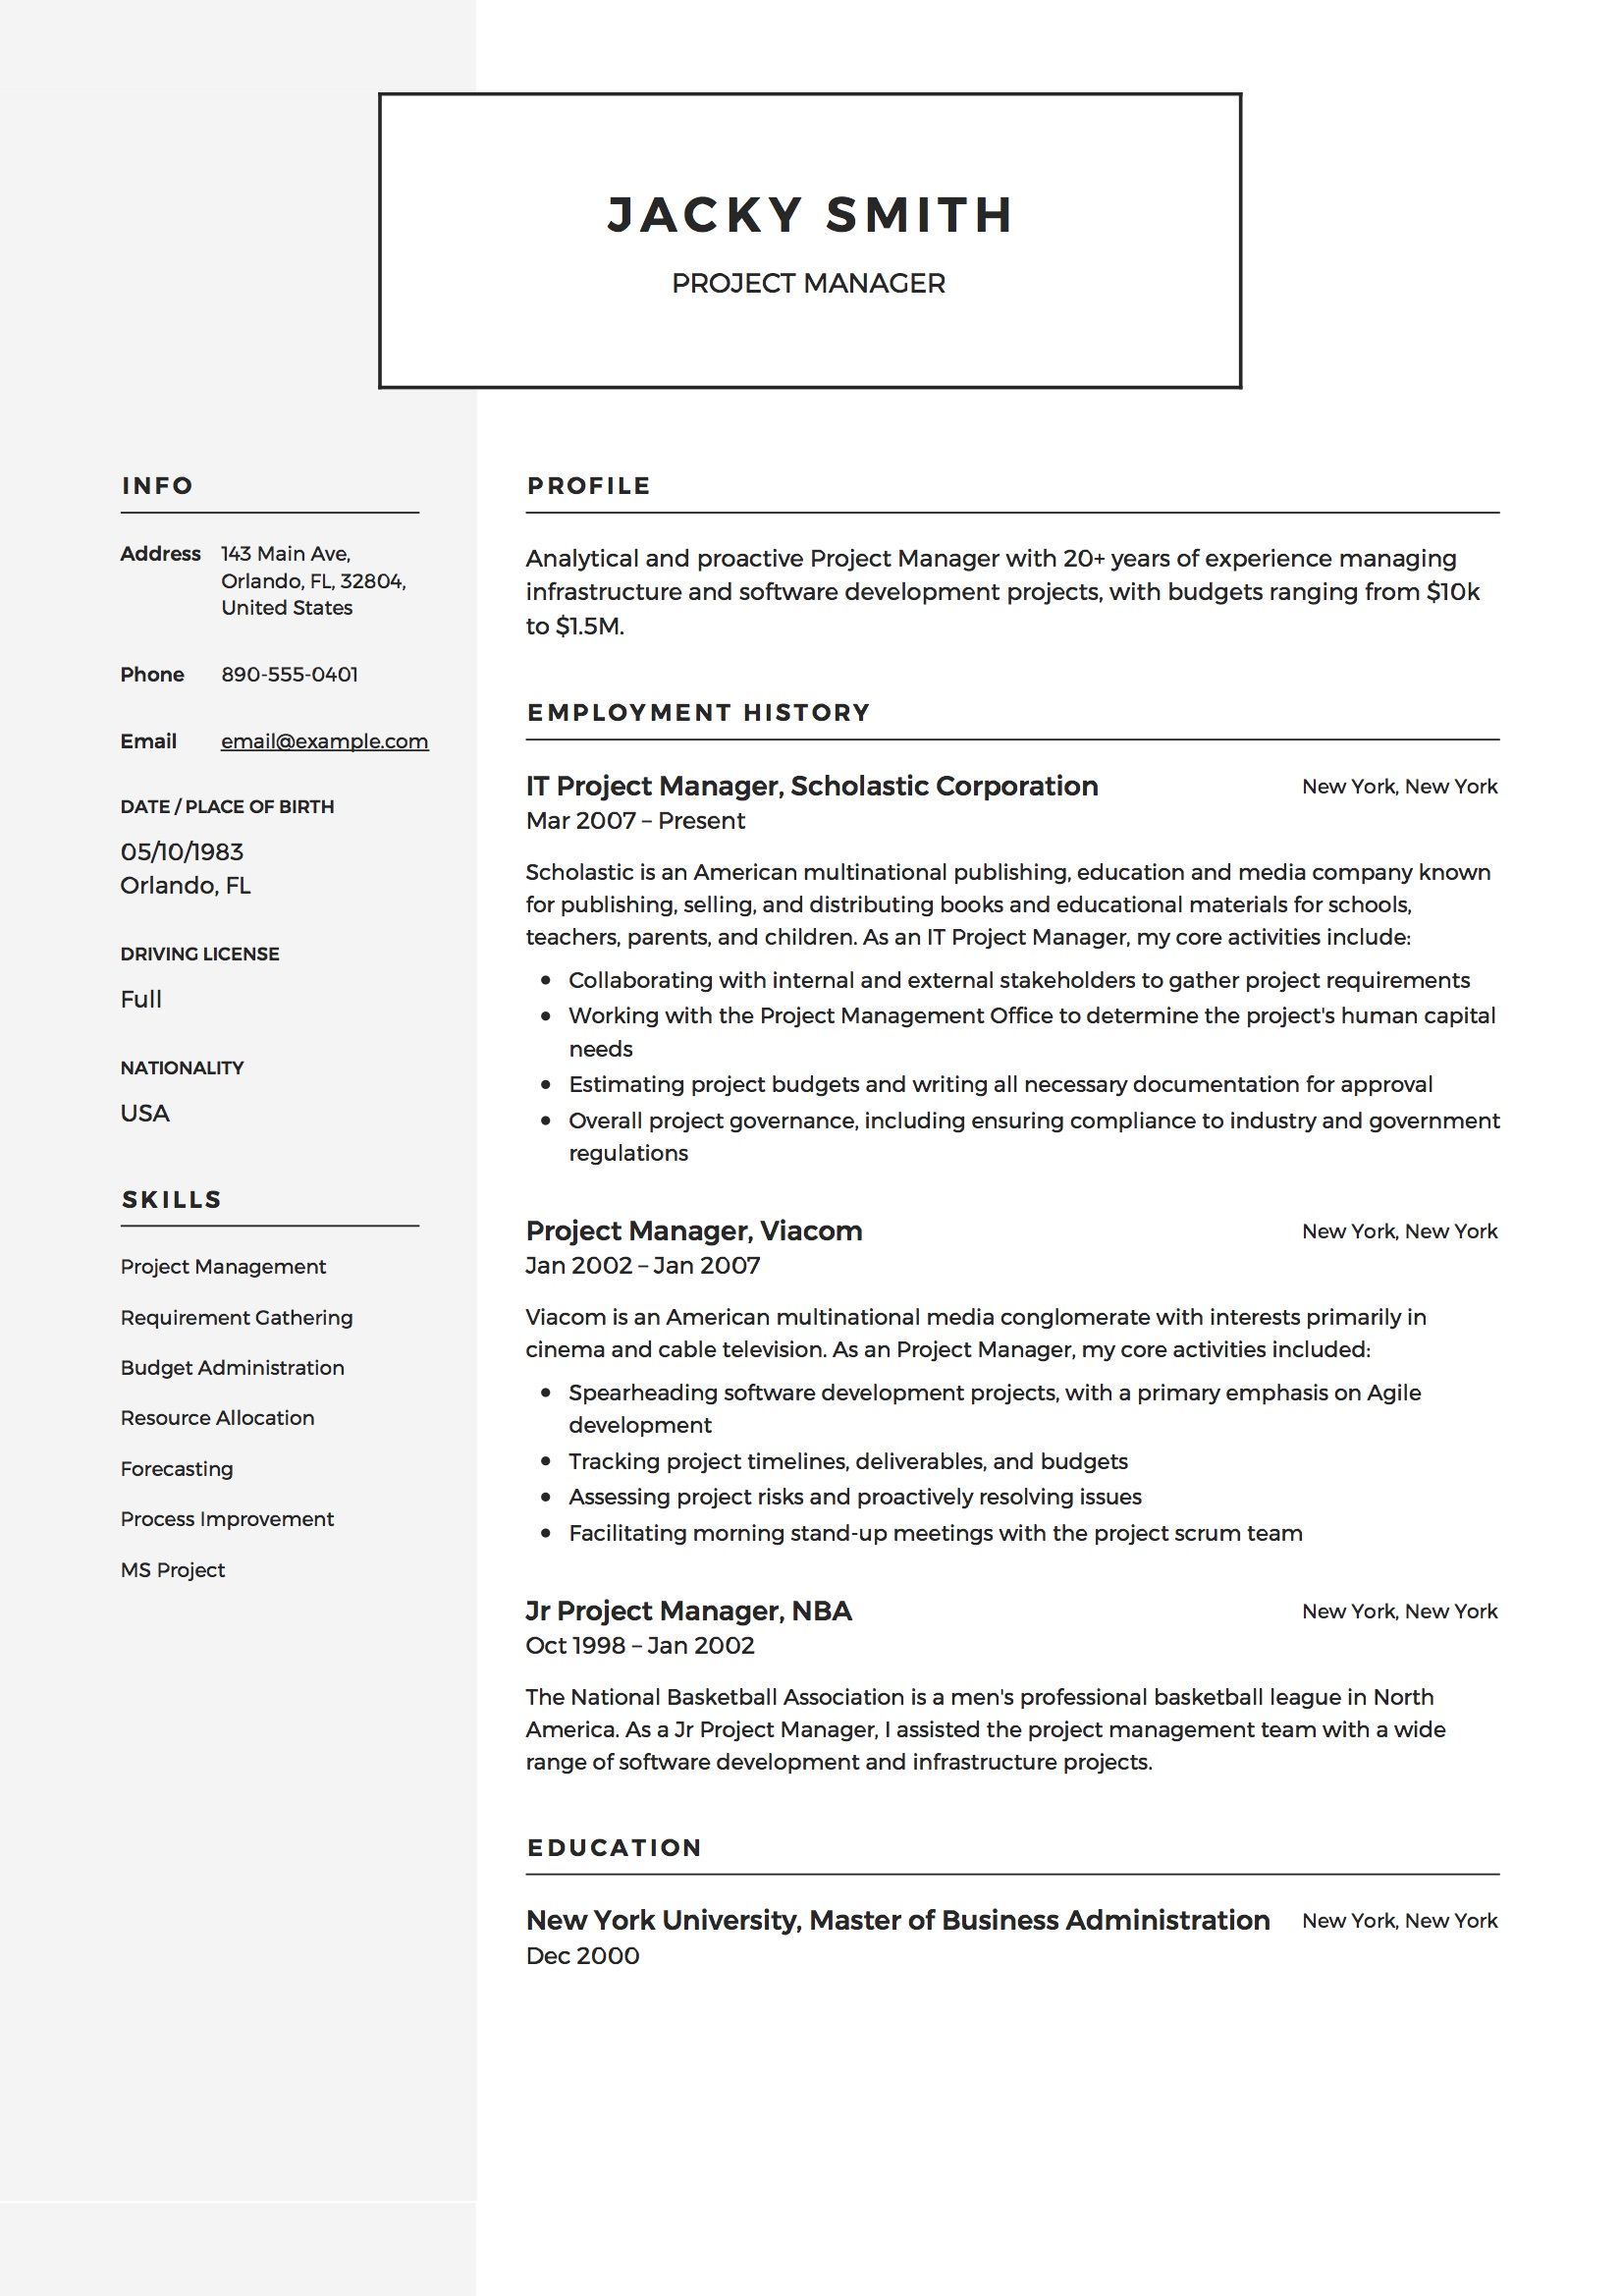 Project Management Job Description Resume New Create Project Manager Roles And Responsibili Project Manager Resume Job Resume Template Resume Template Examples